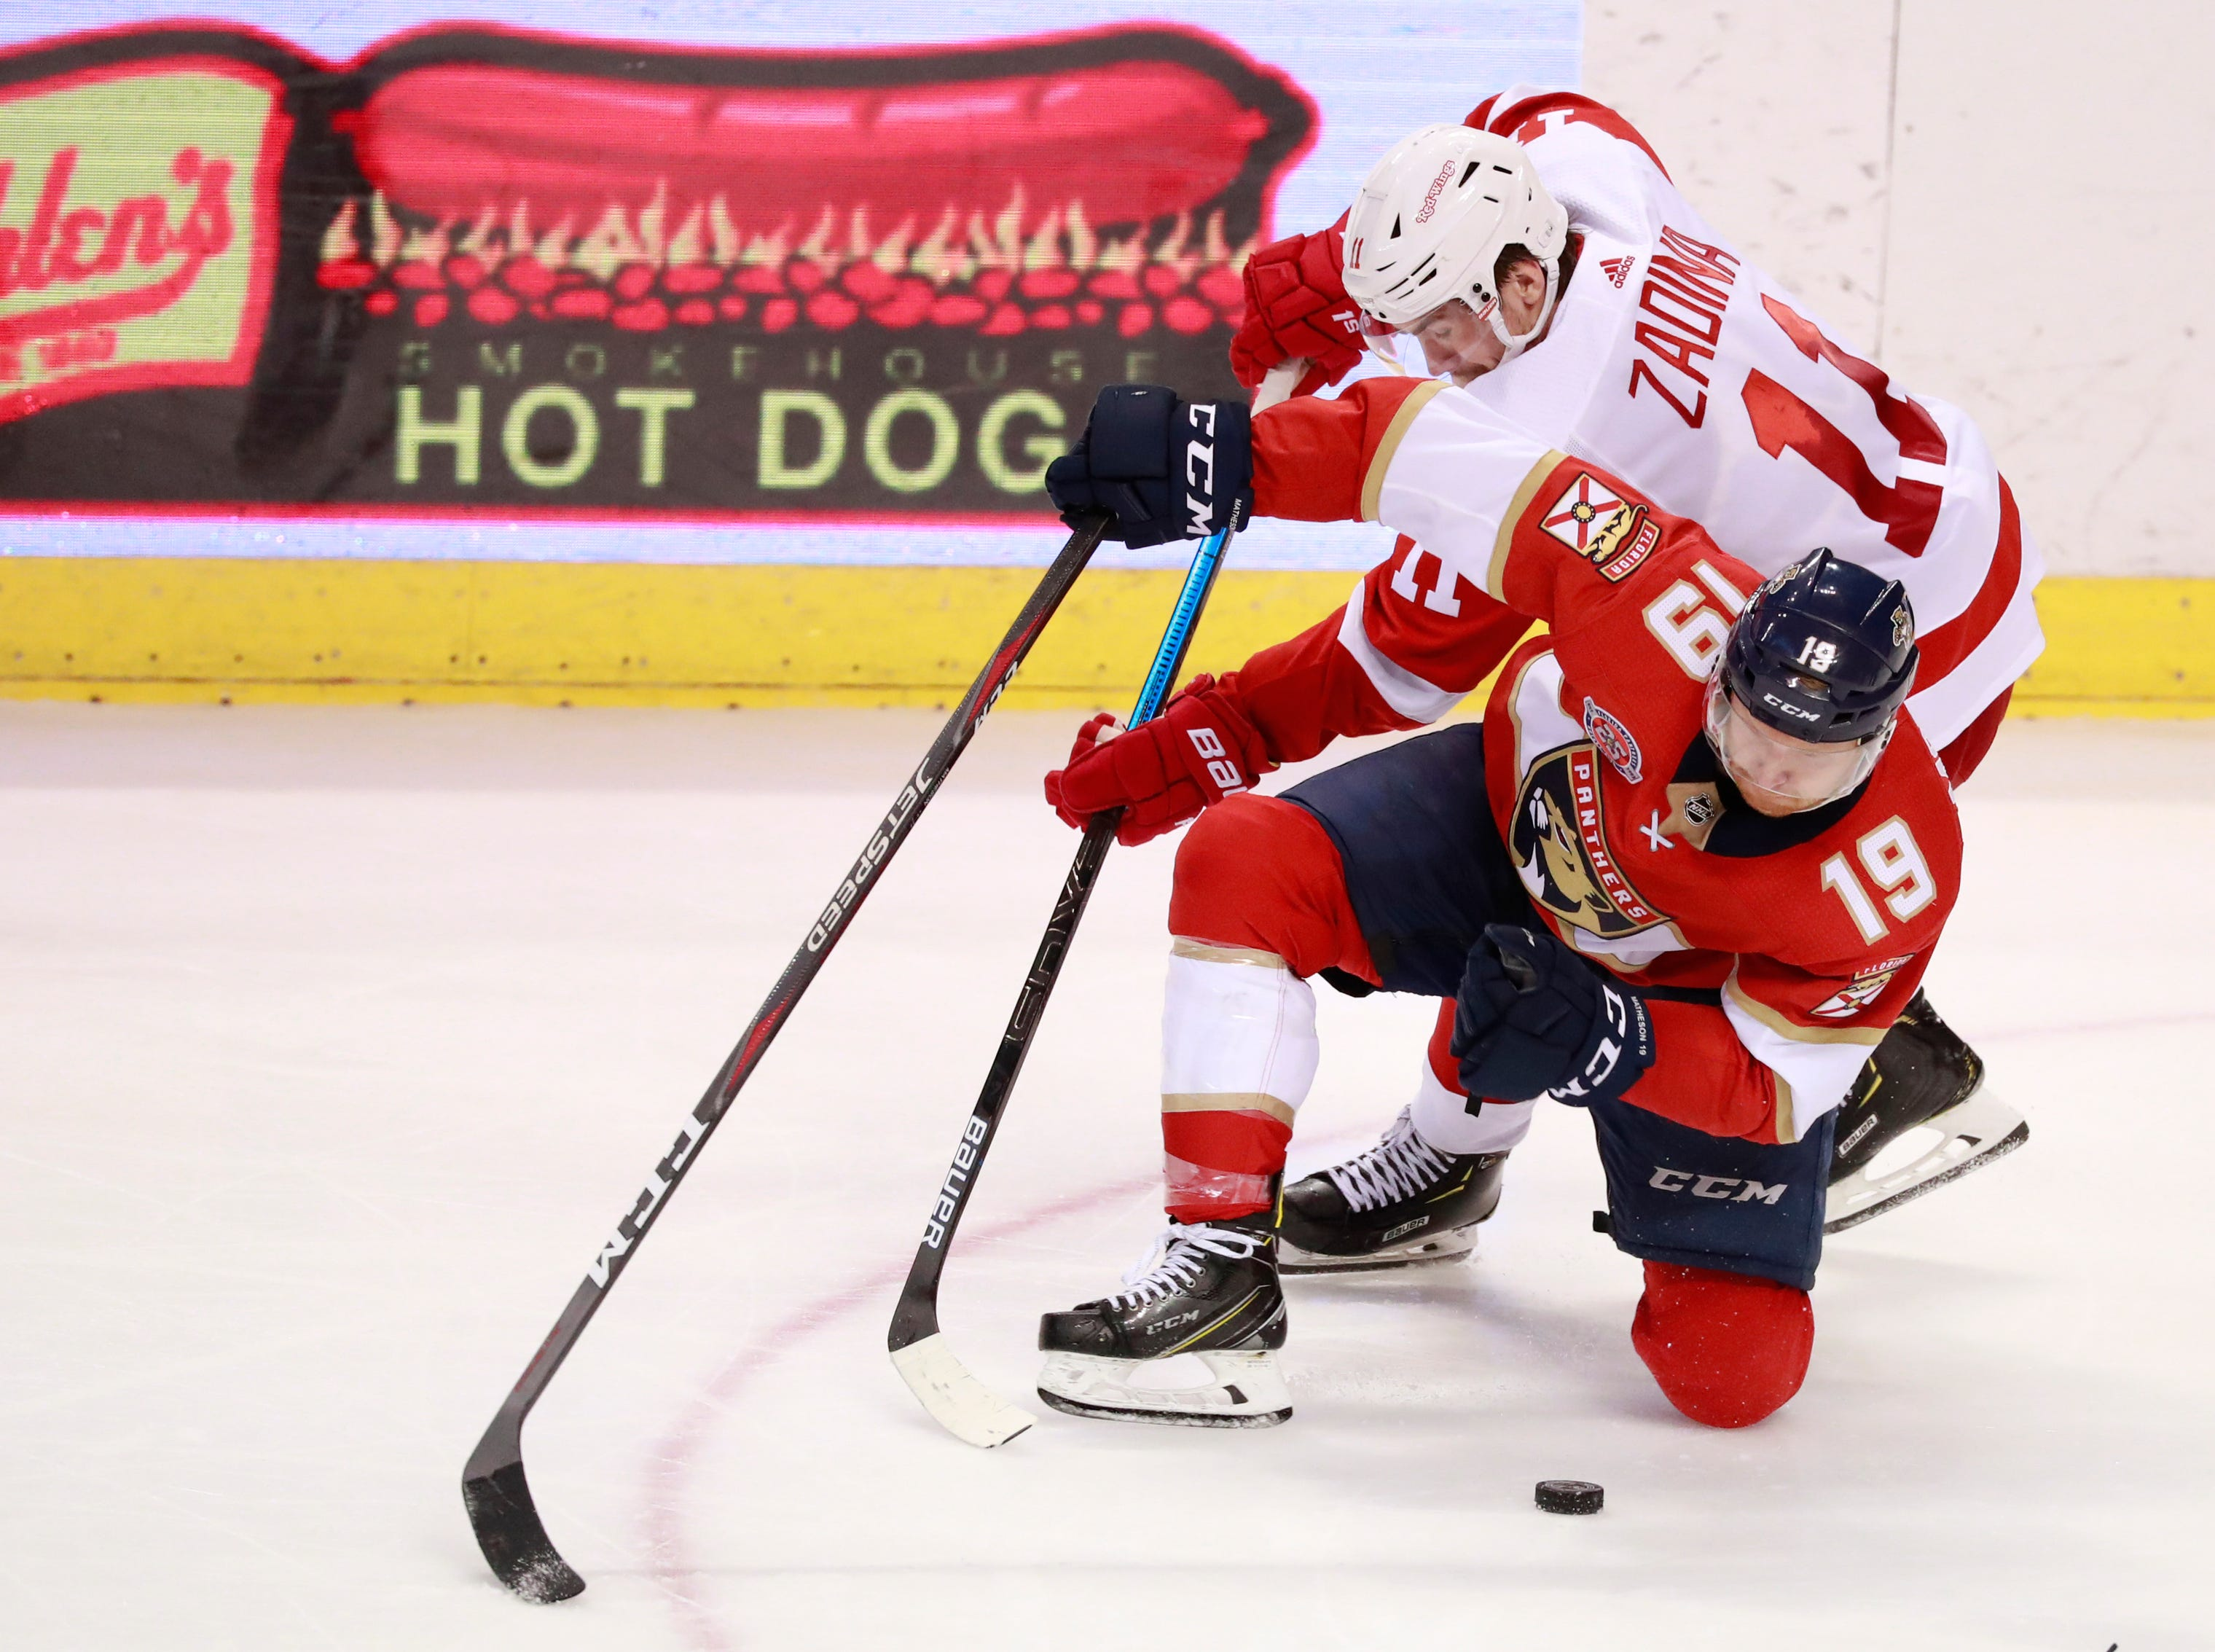 Florida Panthers defenseman Mike Matheson (19) and Detroit Red Wings right wing Filip Zadina (11) battle for the puck during the third period.